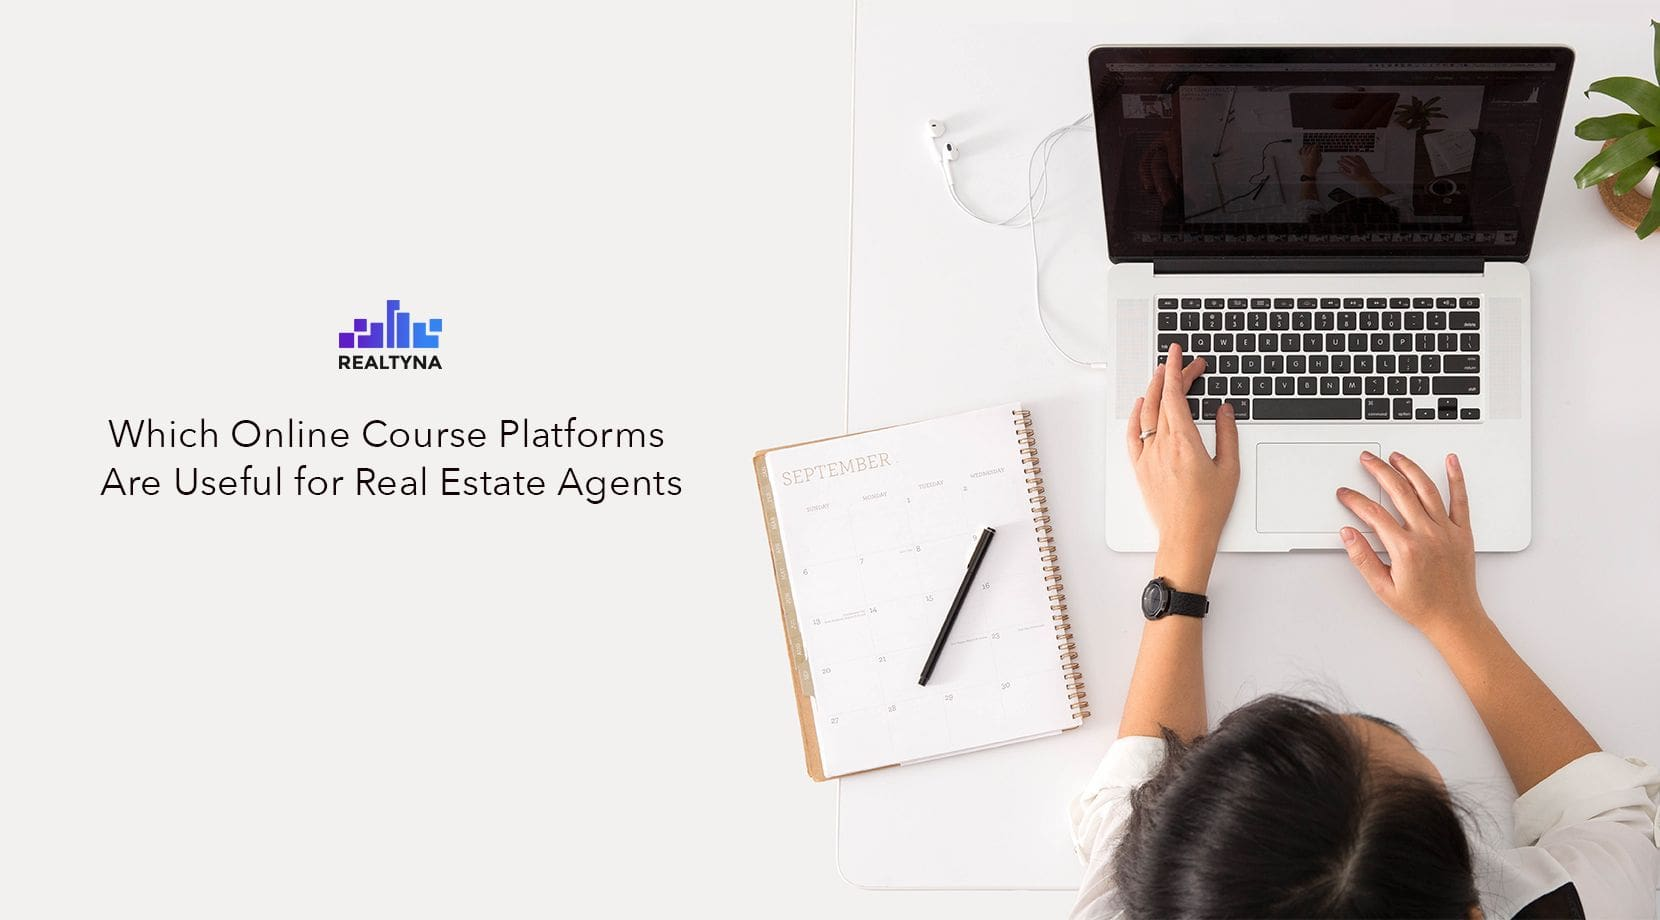 Which Online Course Platforms Are Useful for Real Estate Agents?